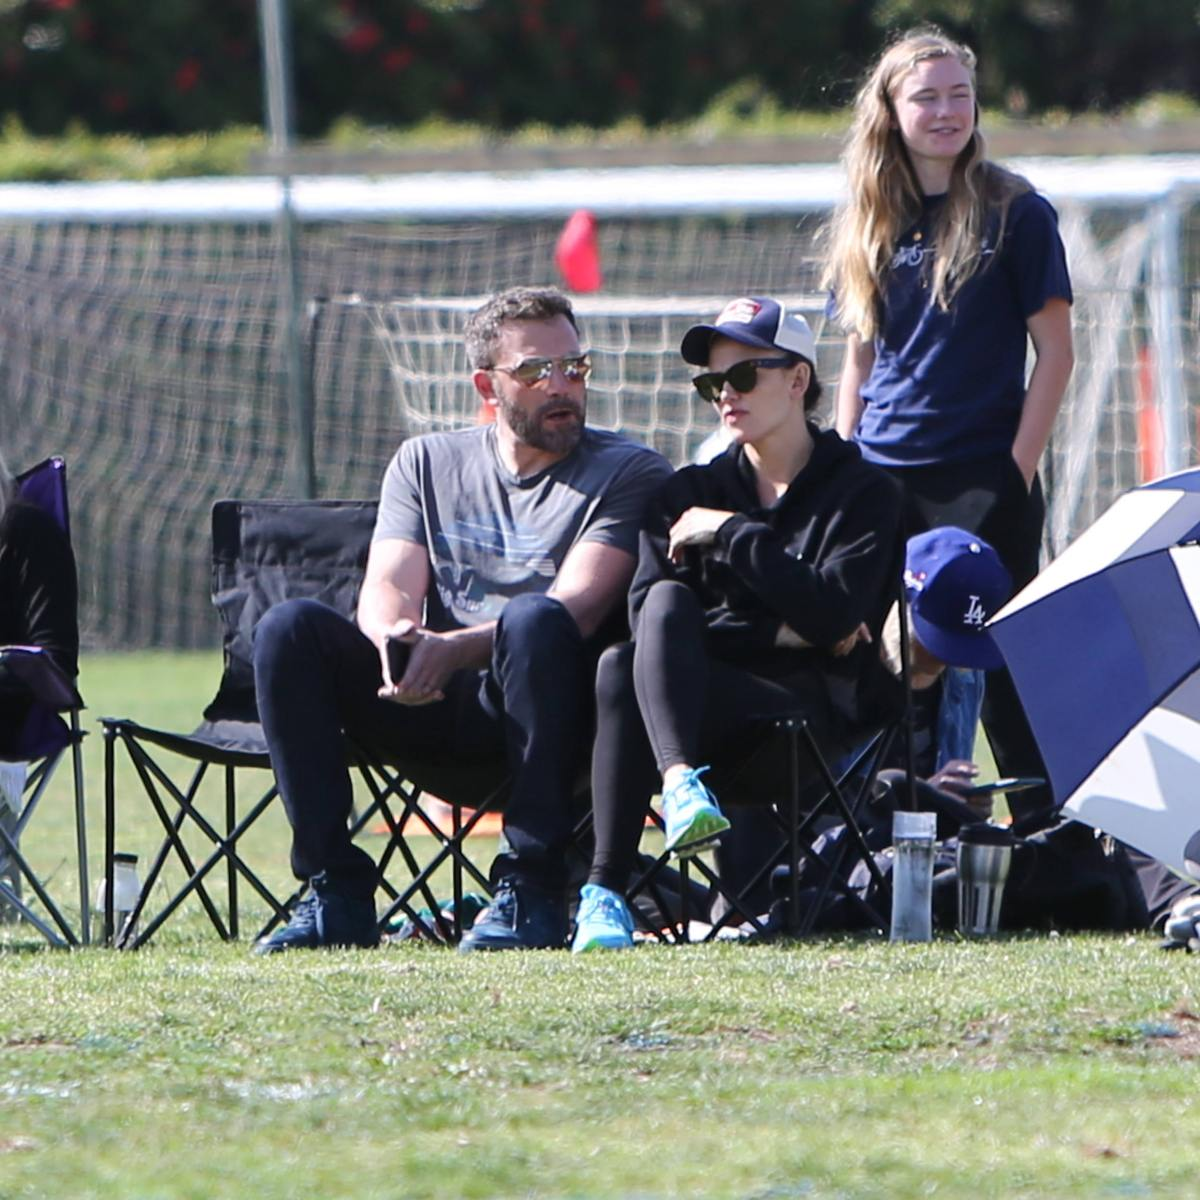 Ben Affleck and Jennifer Garner Sit Side-by-Side (and Share a Laugh!) While at a Soccer Game